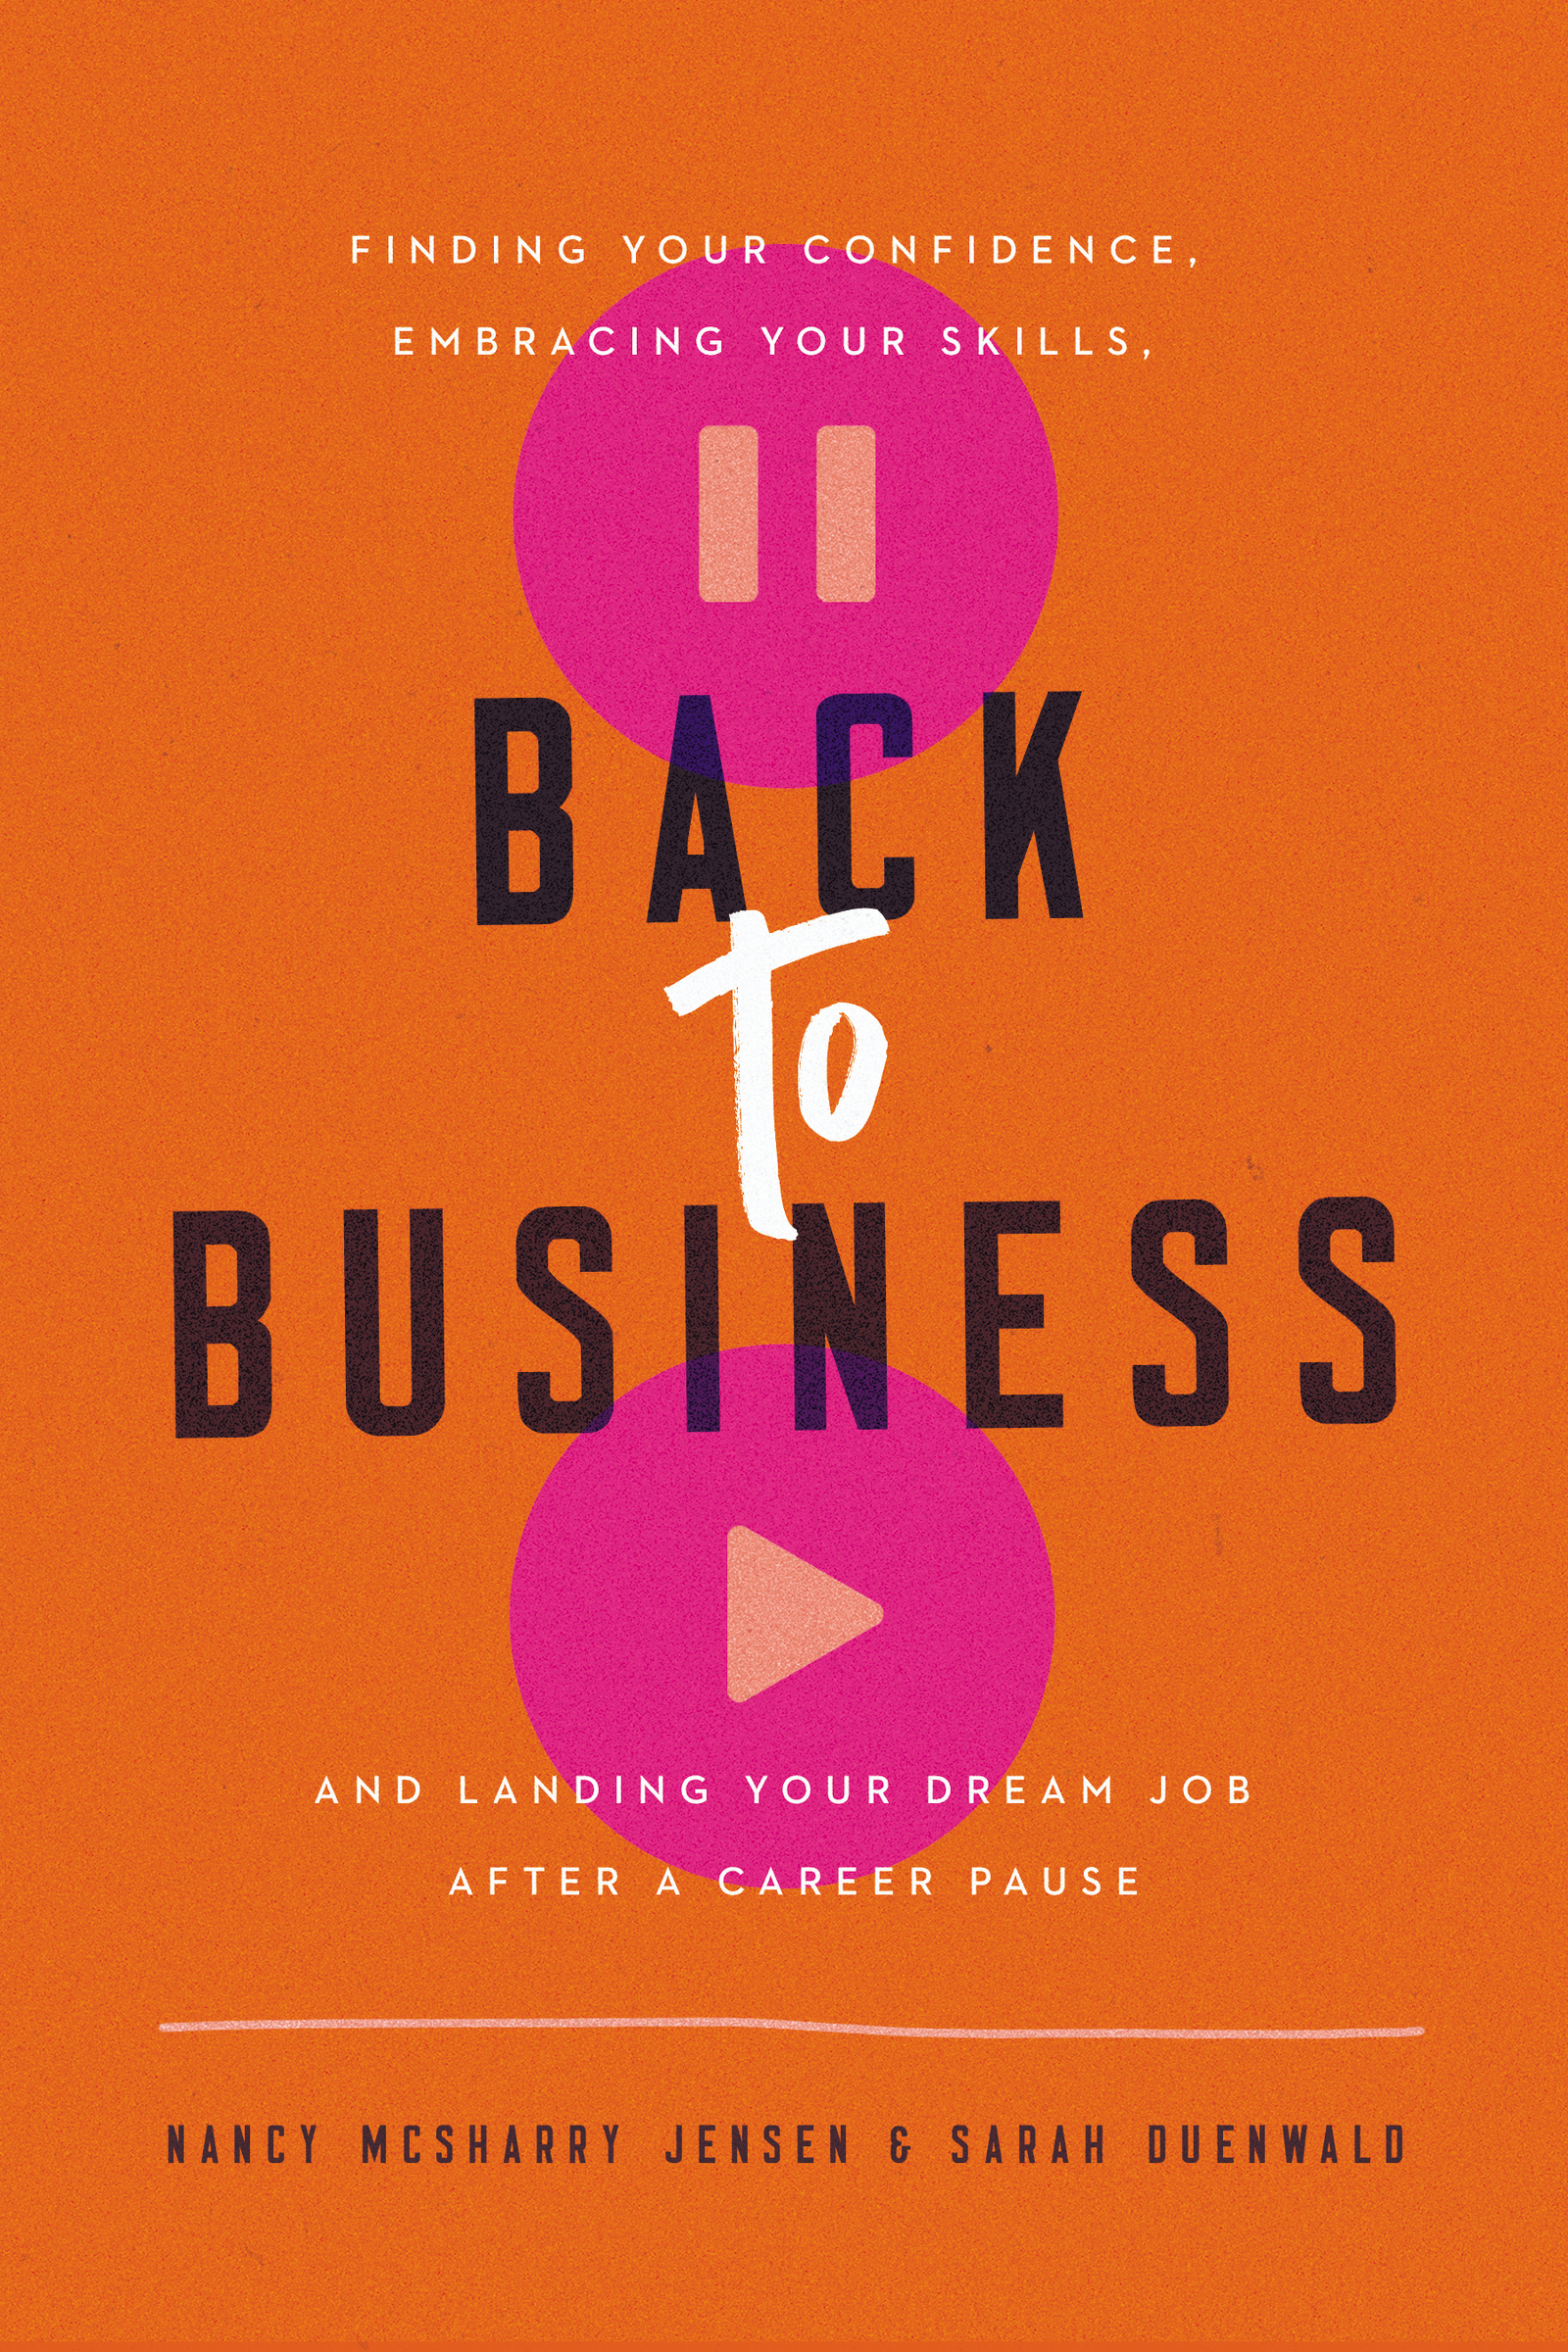 Back to Business Finding Your Confidence, Embracing Your Skills, and Landing Your Dream Job After a Career Pause